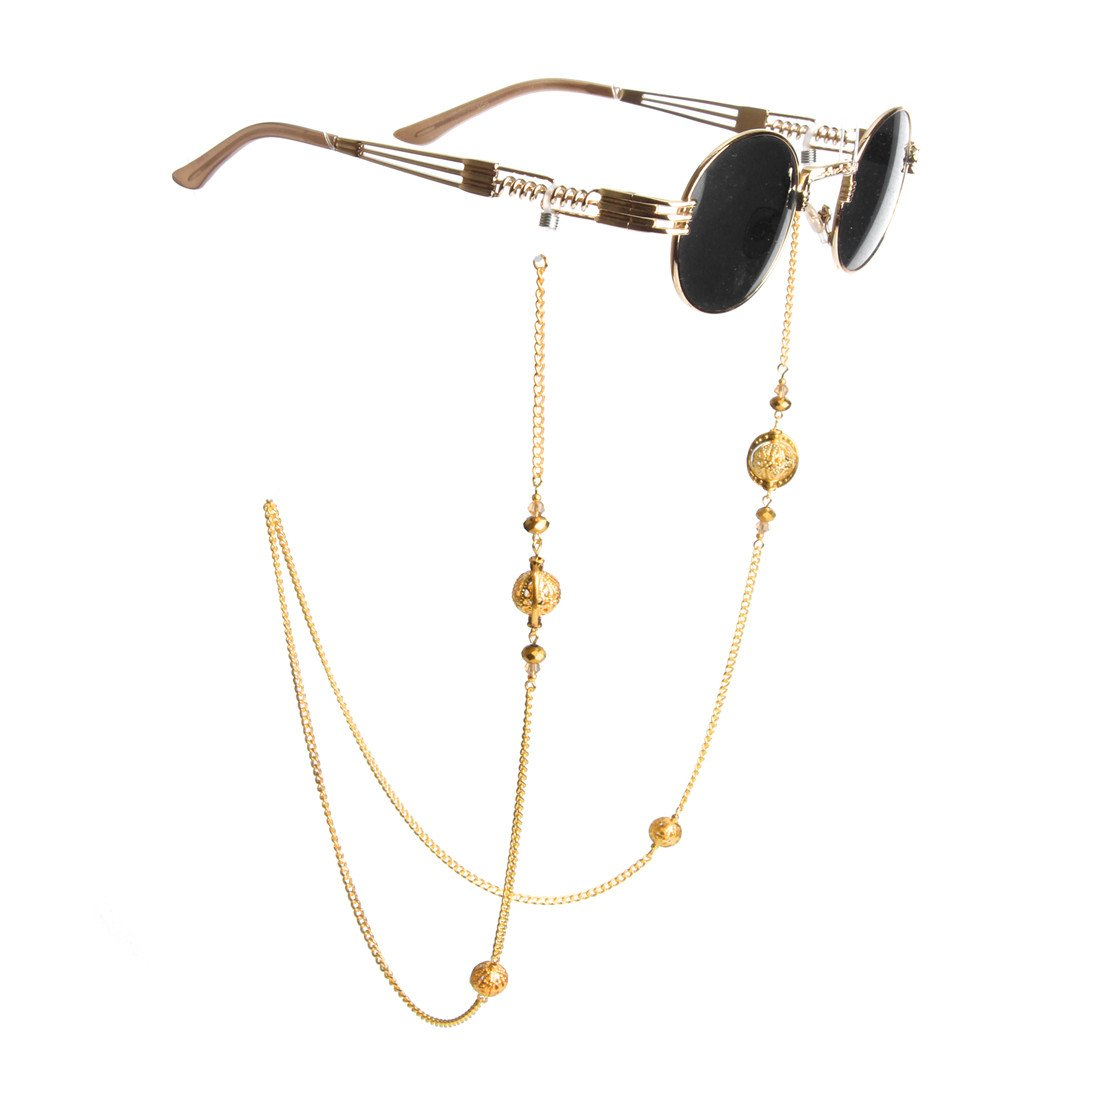 Kalevel Eyeglass Holder Necklace Eyeglass Chain Beaded Glasses Sunglasses Chain Eyeglass Chains and Cords for Women Gold